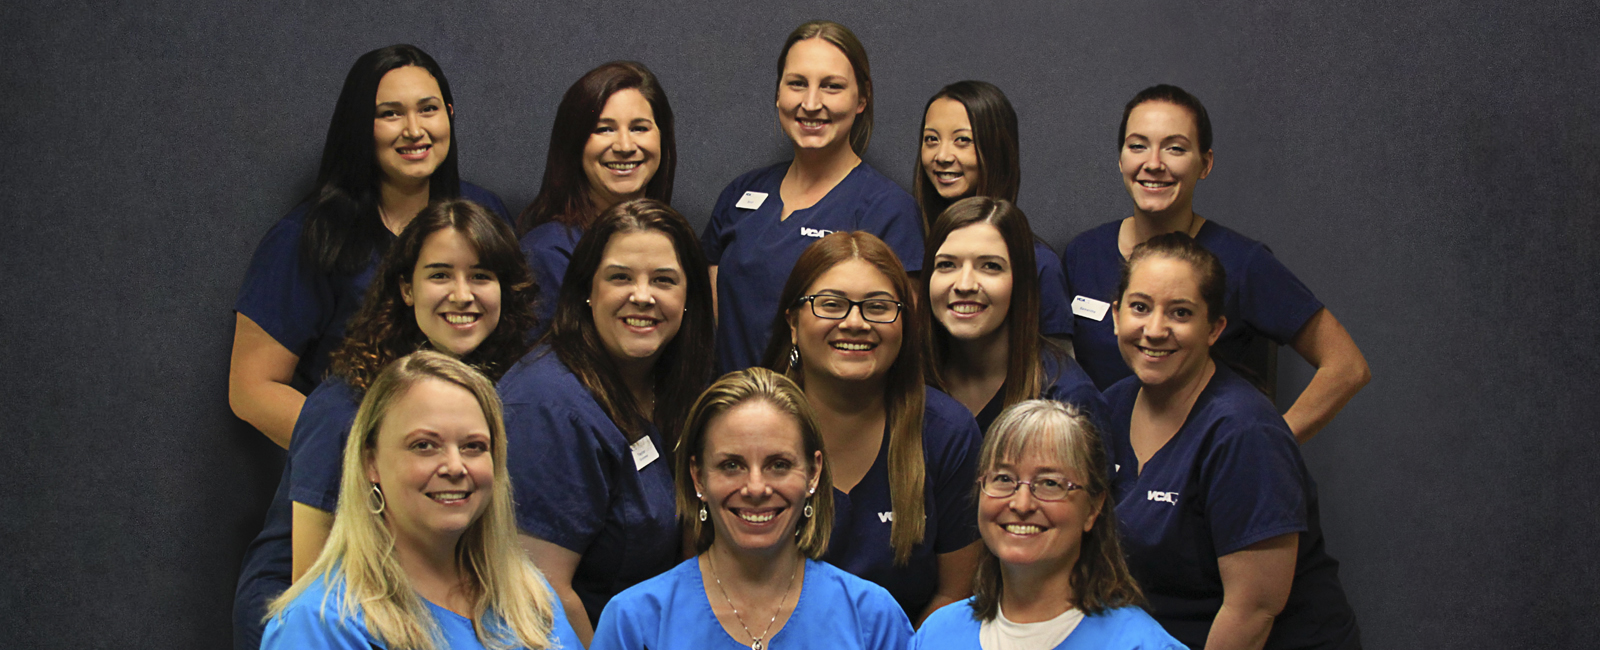 Team Picture of VCA Advanced Care Animal Hospital